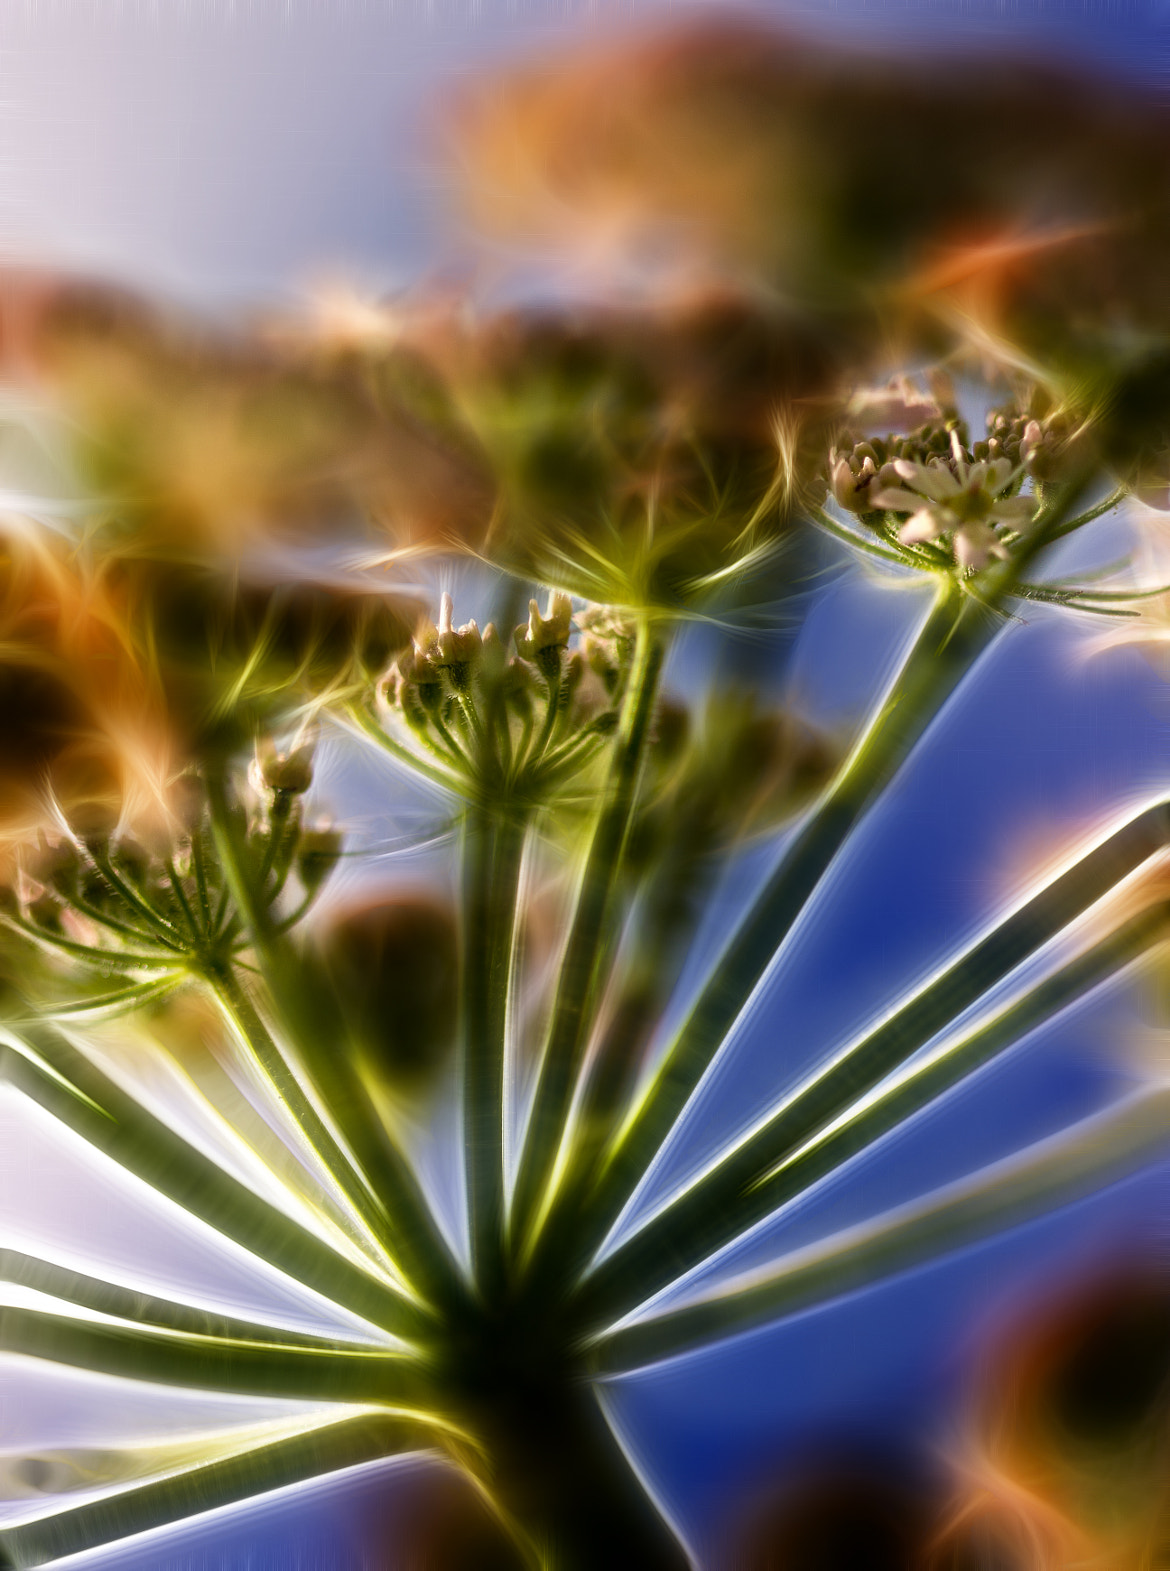 Photograph Hogweed by Alan Sheers on 500px